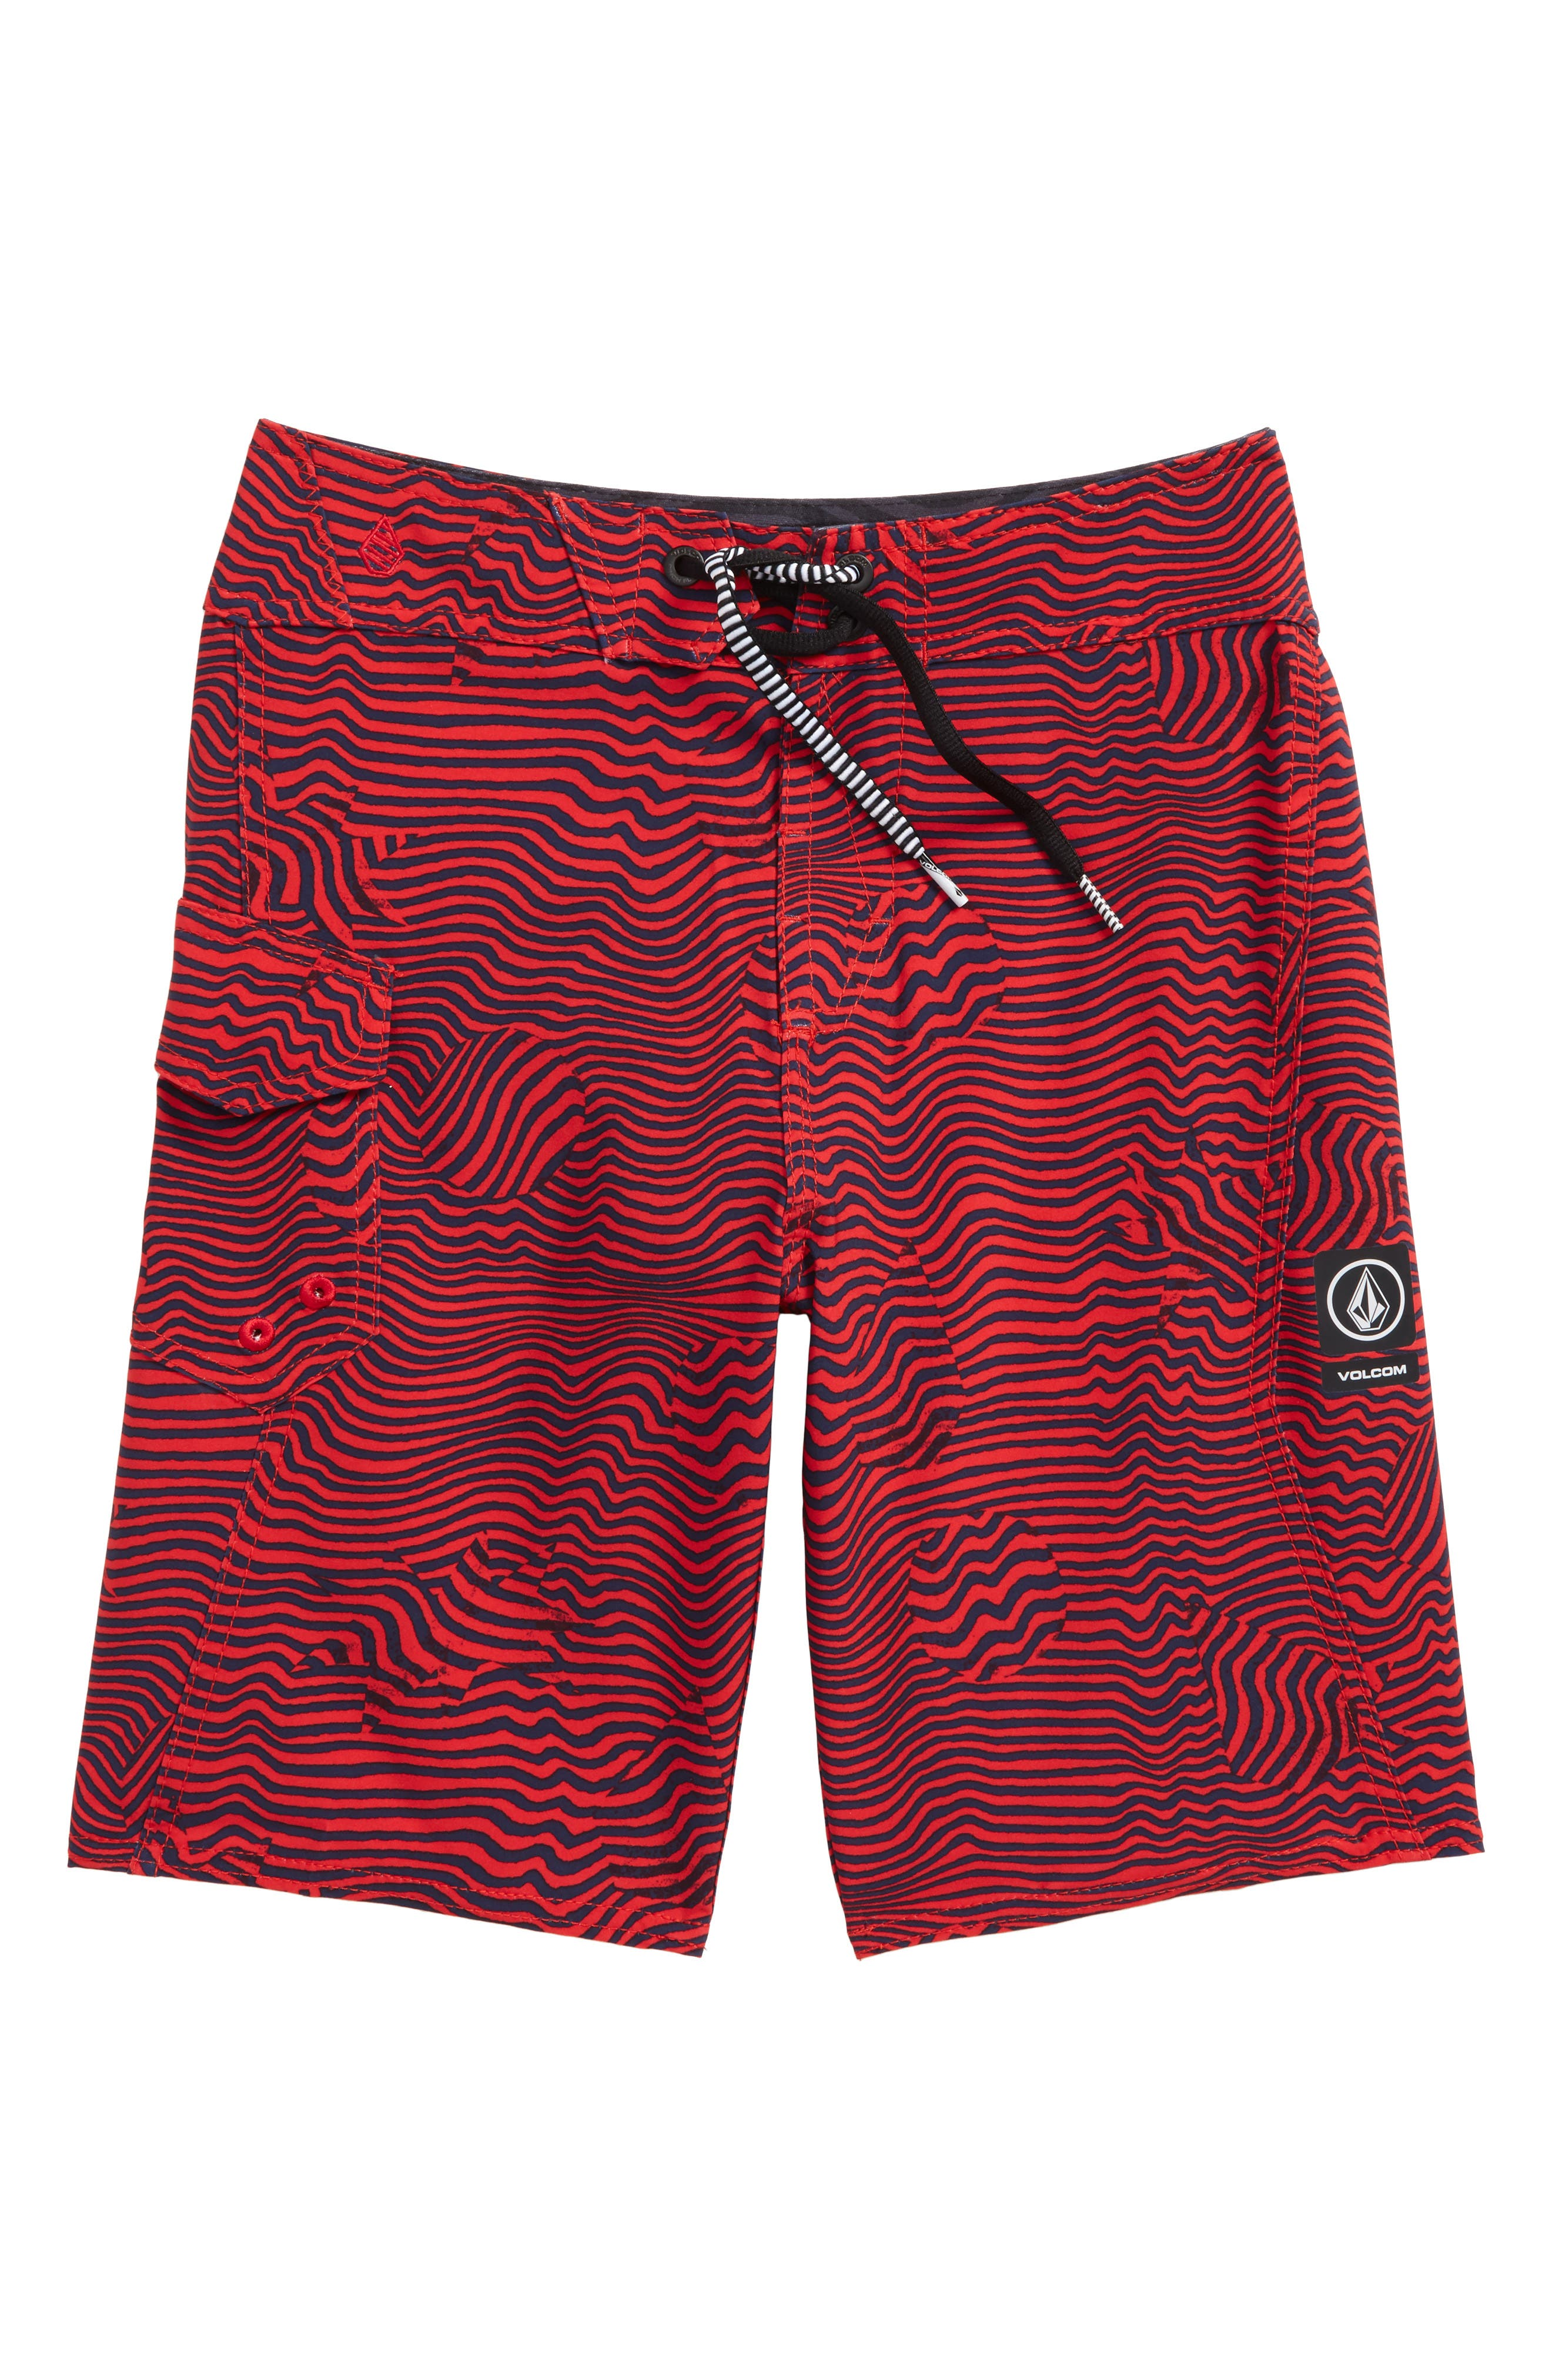 Magnetic Stone Board Shorts,                         Main,                         color, True Red